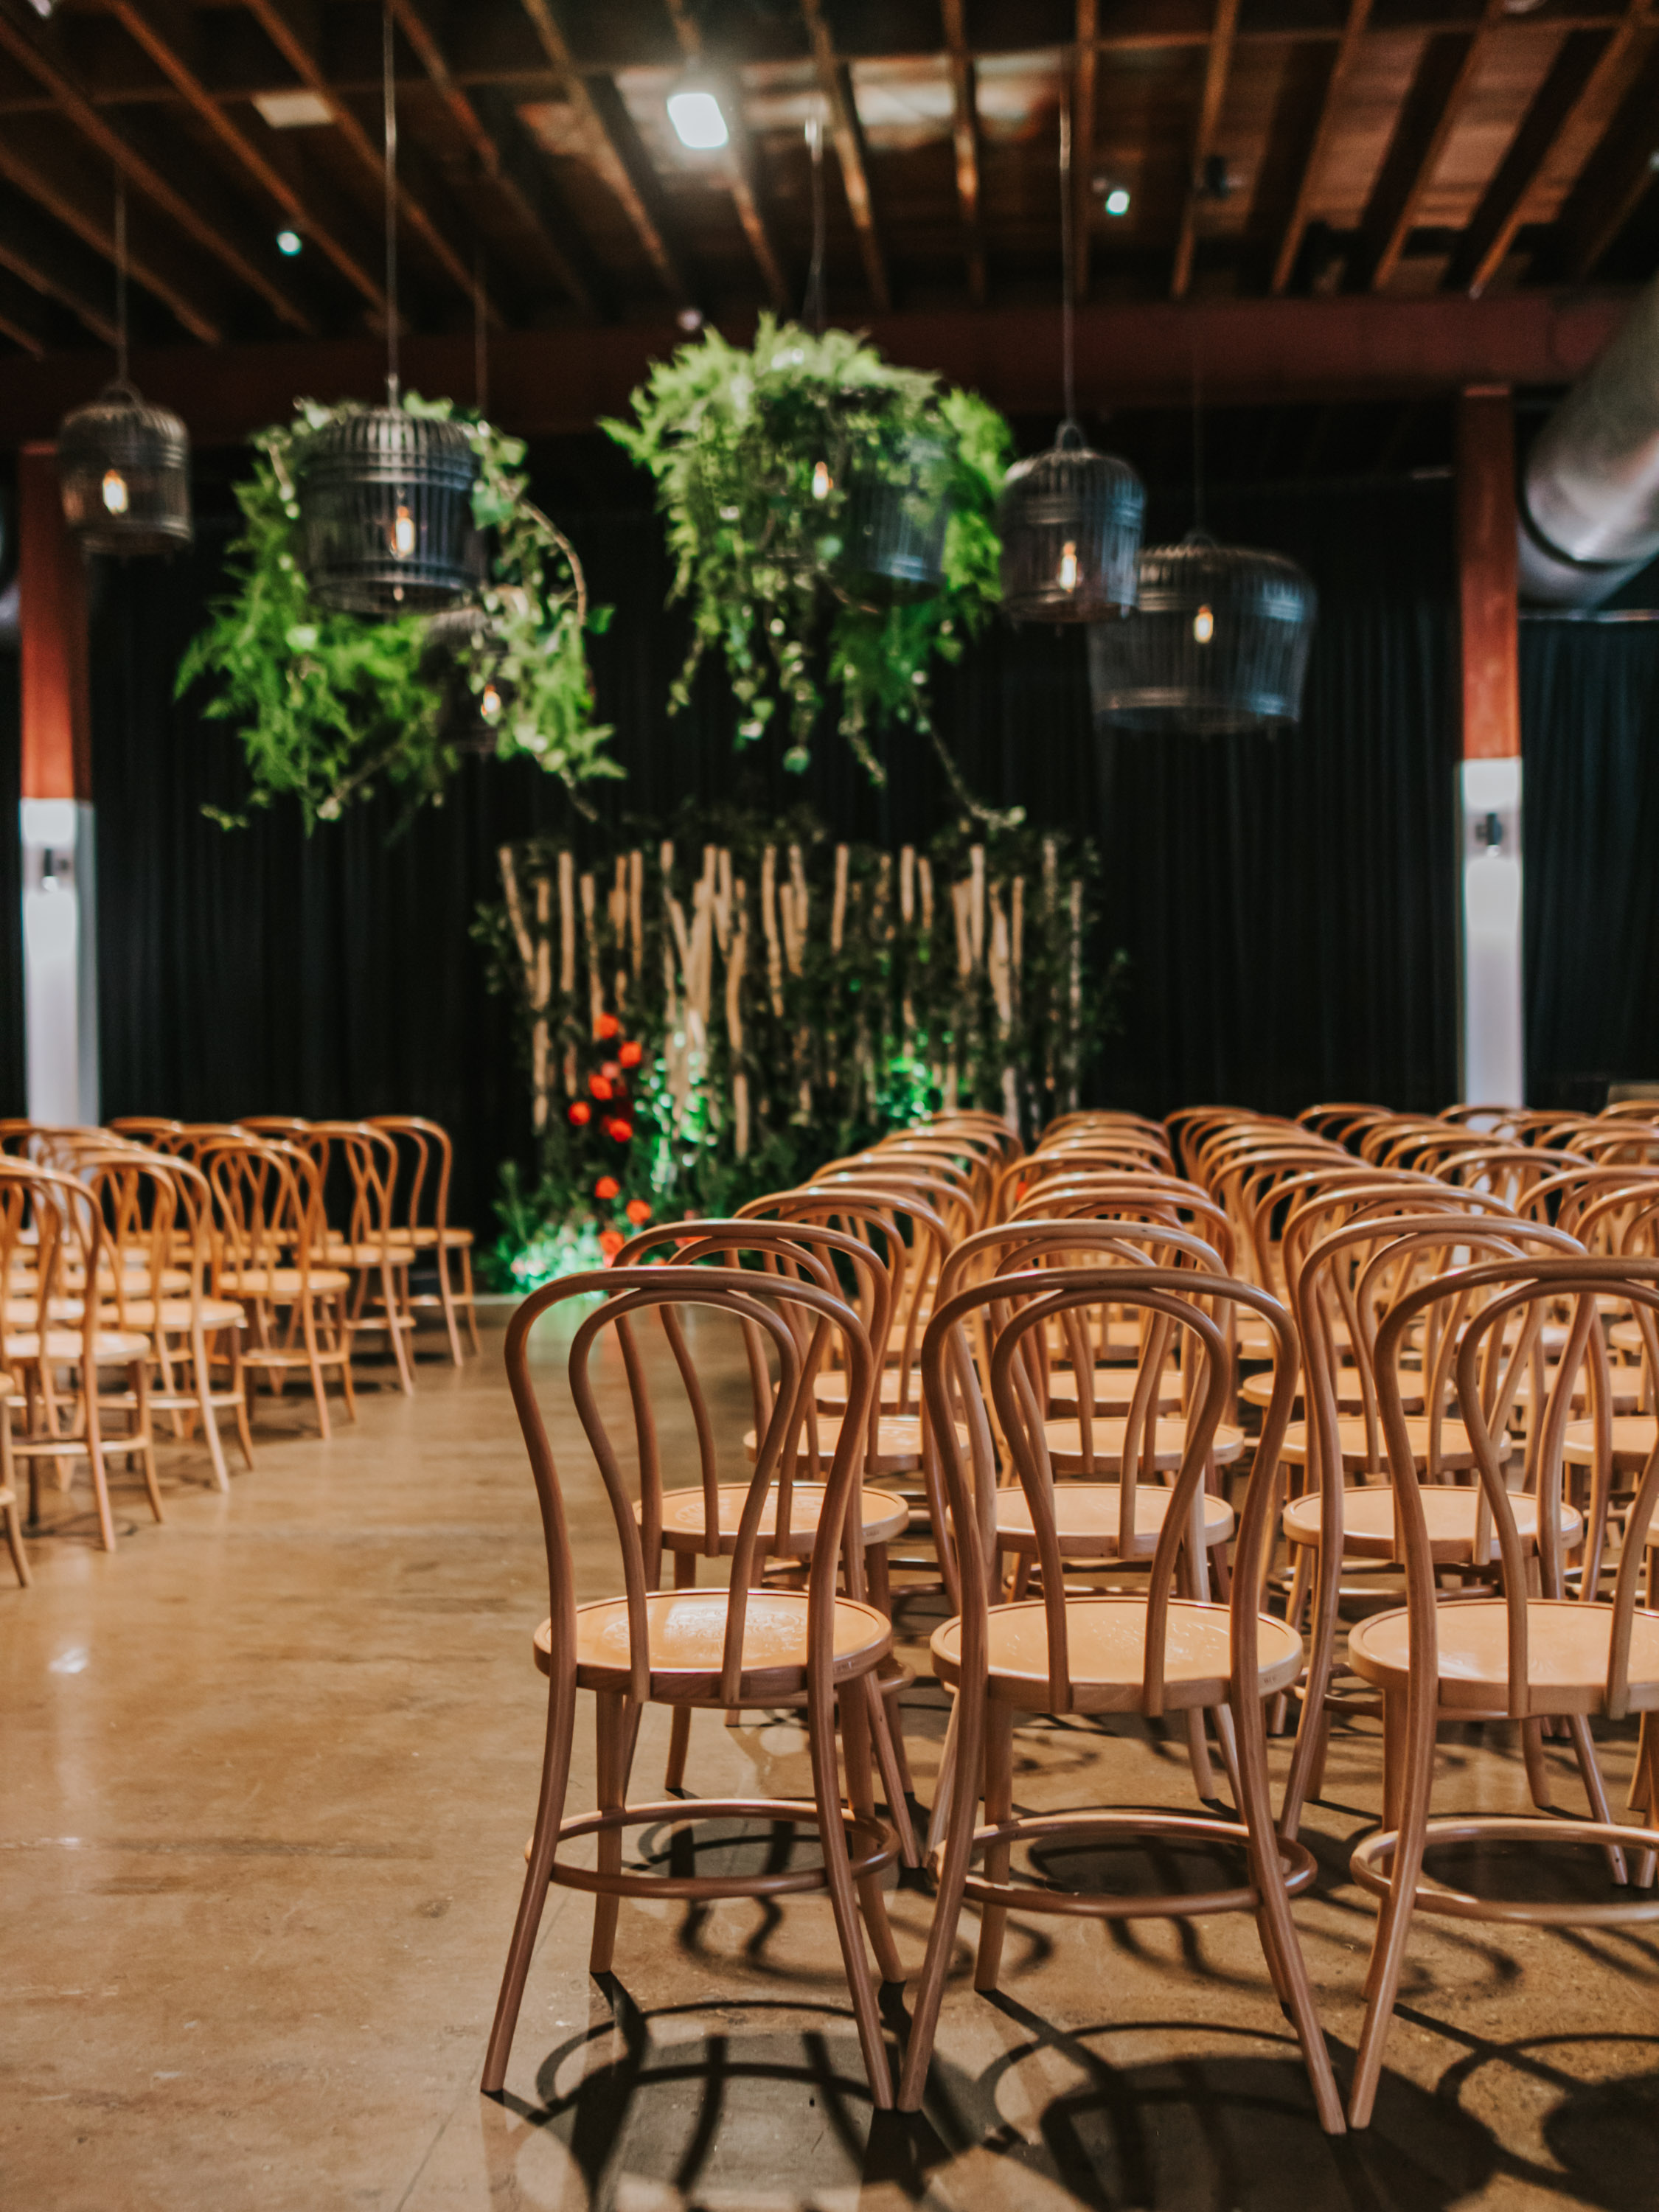 white+white weddings and events the wedding school emily and jack lightspace wedding greenery ceremony florals suspended hanging bentwood chairs